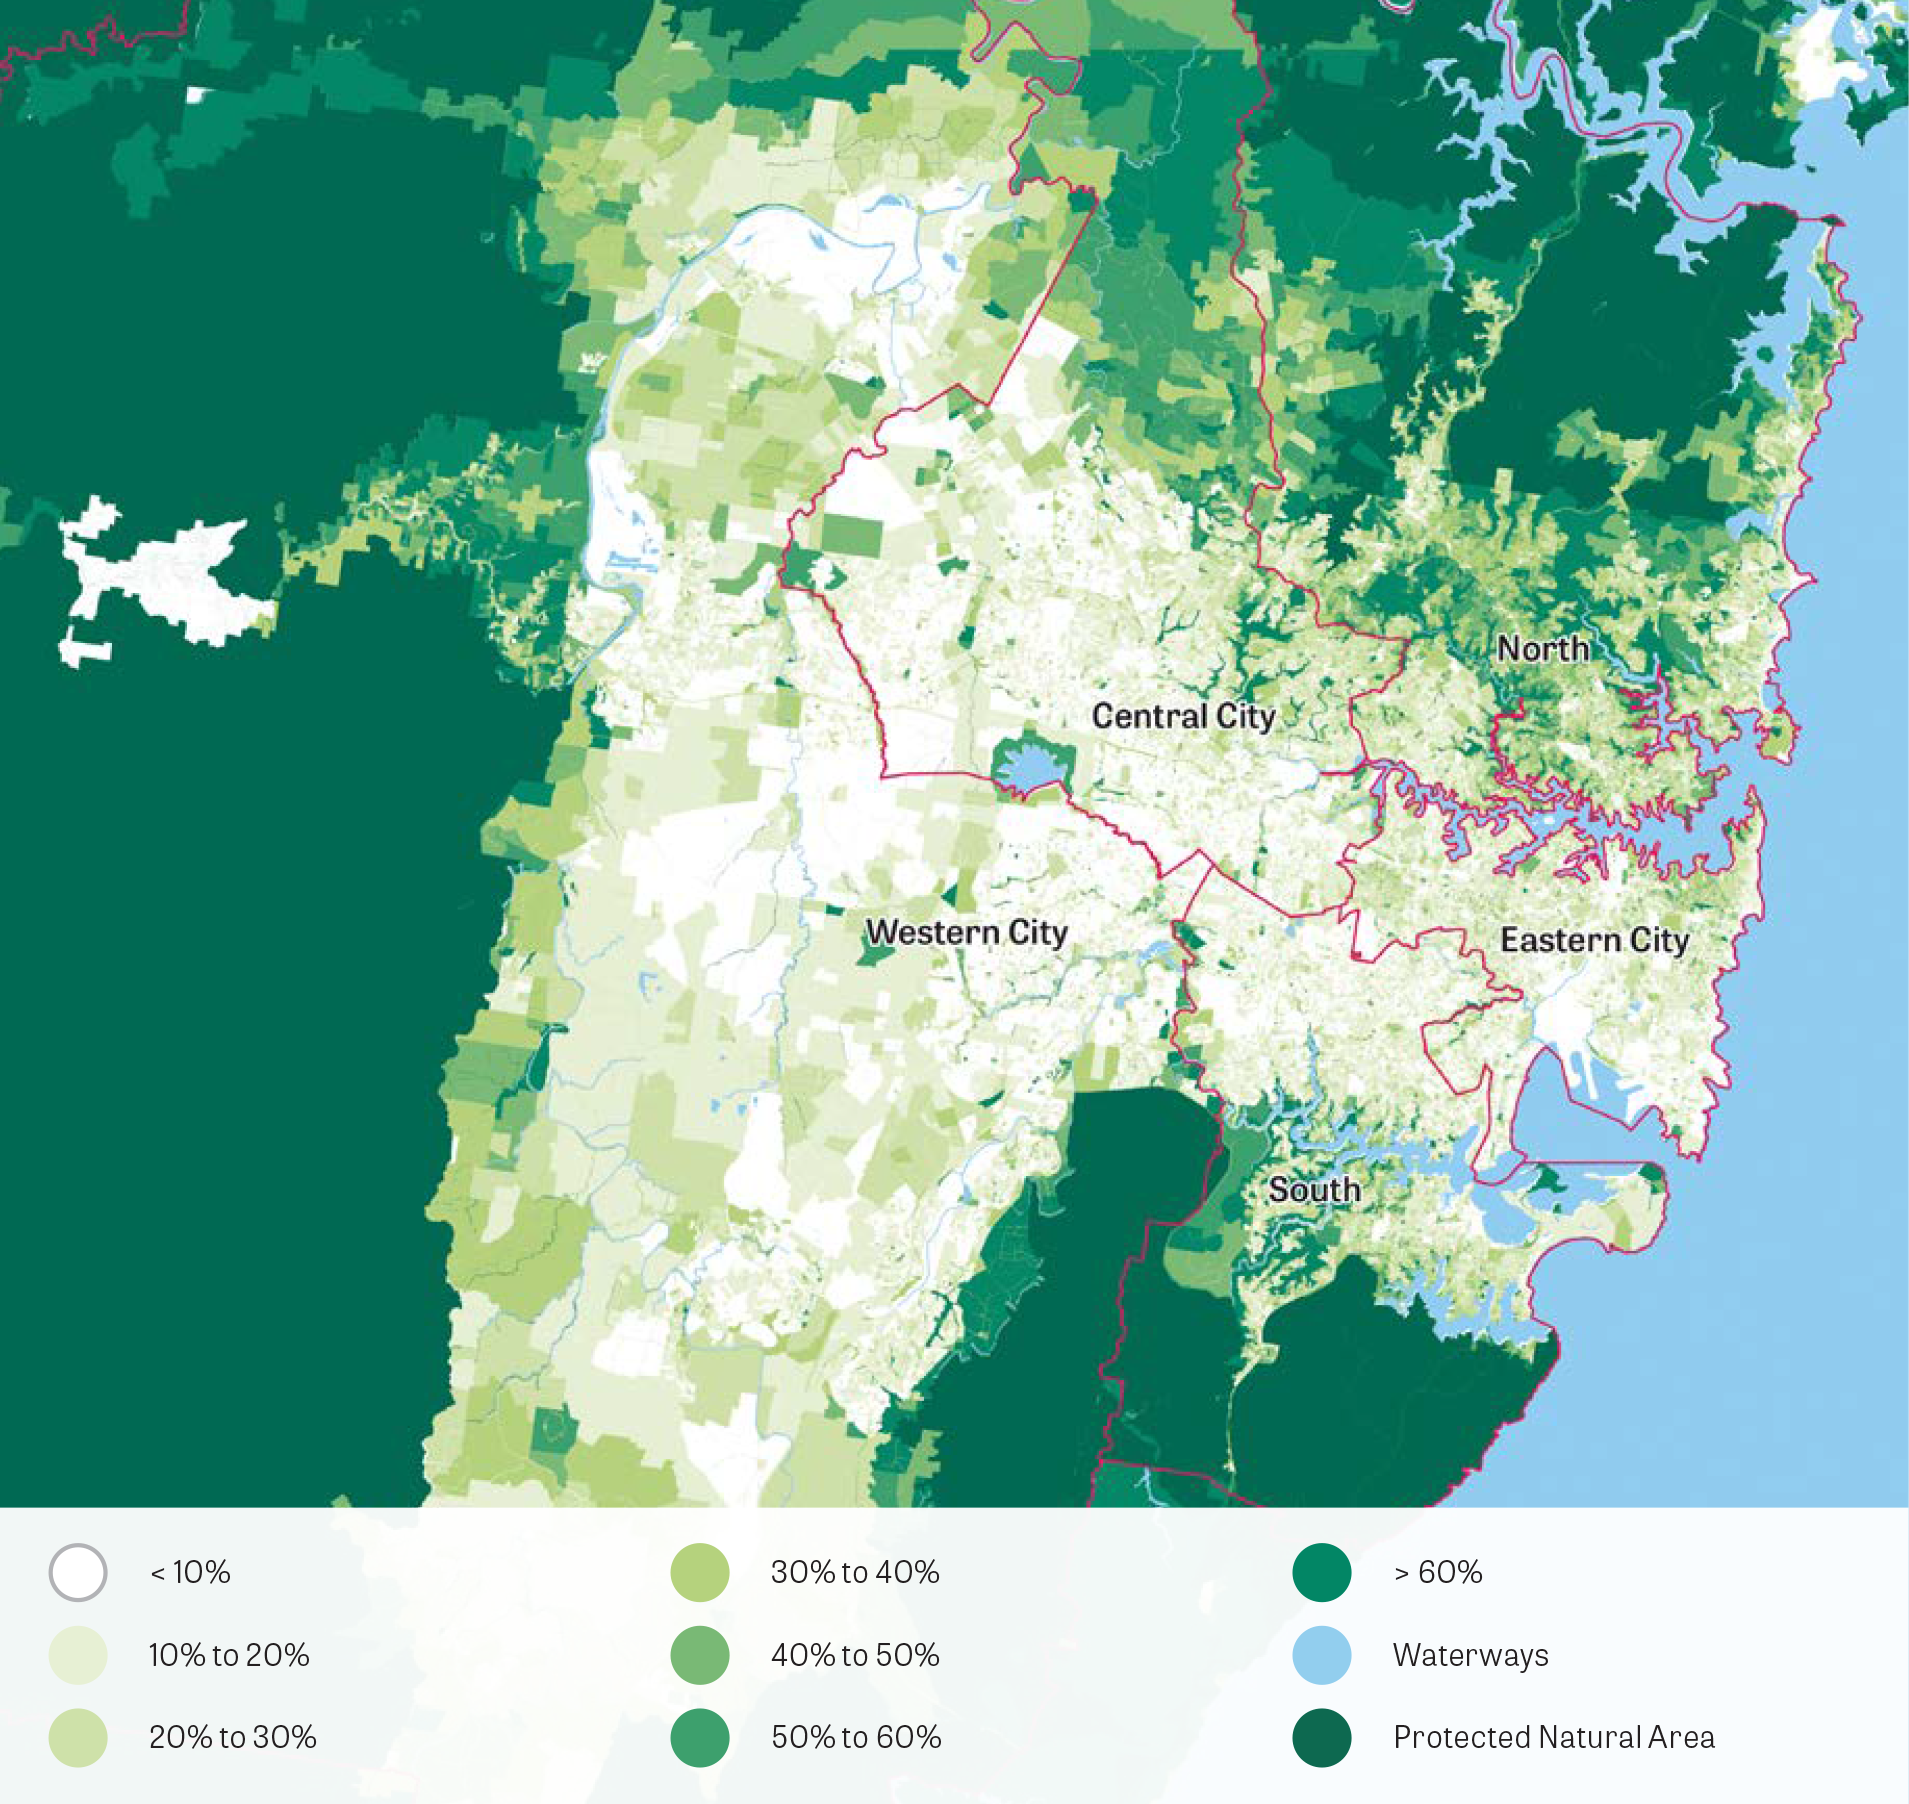 Greater Sydney and district distribution of tree canopy cover 2016